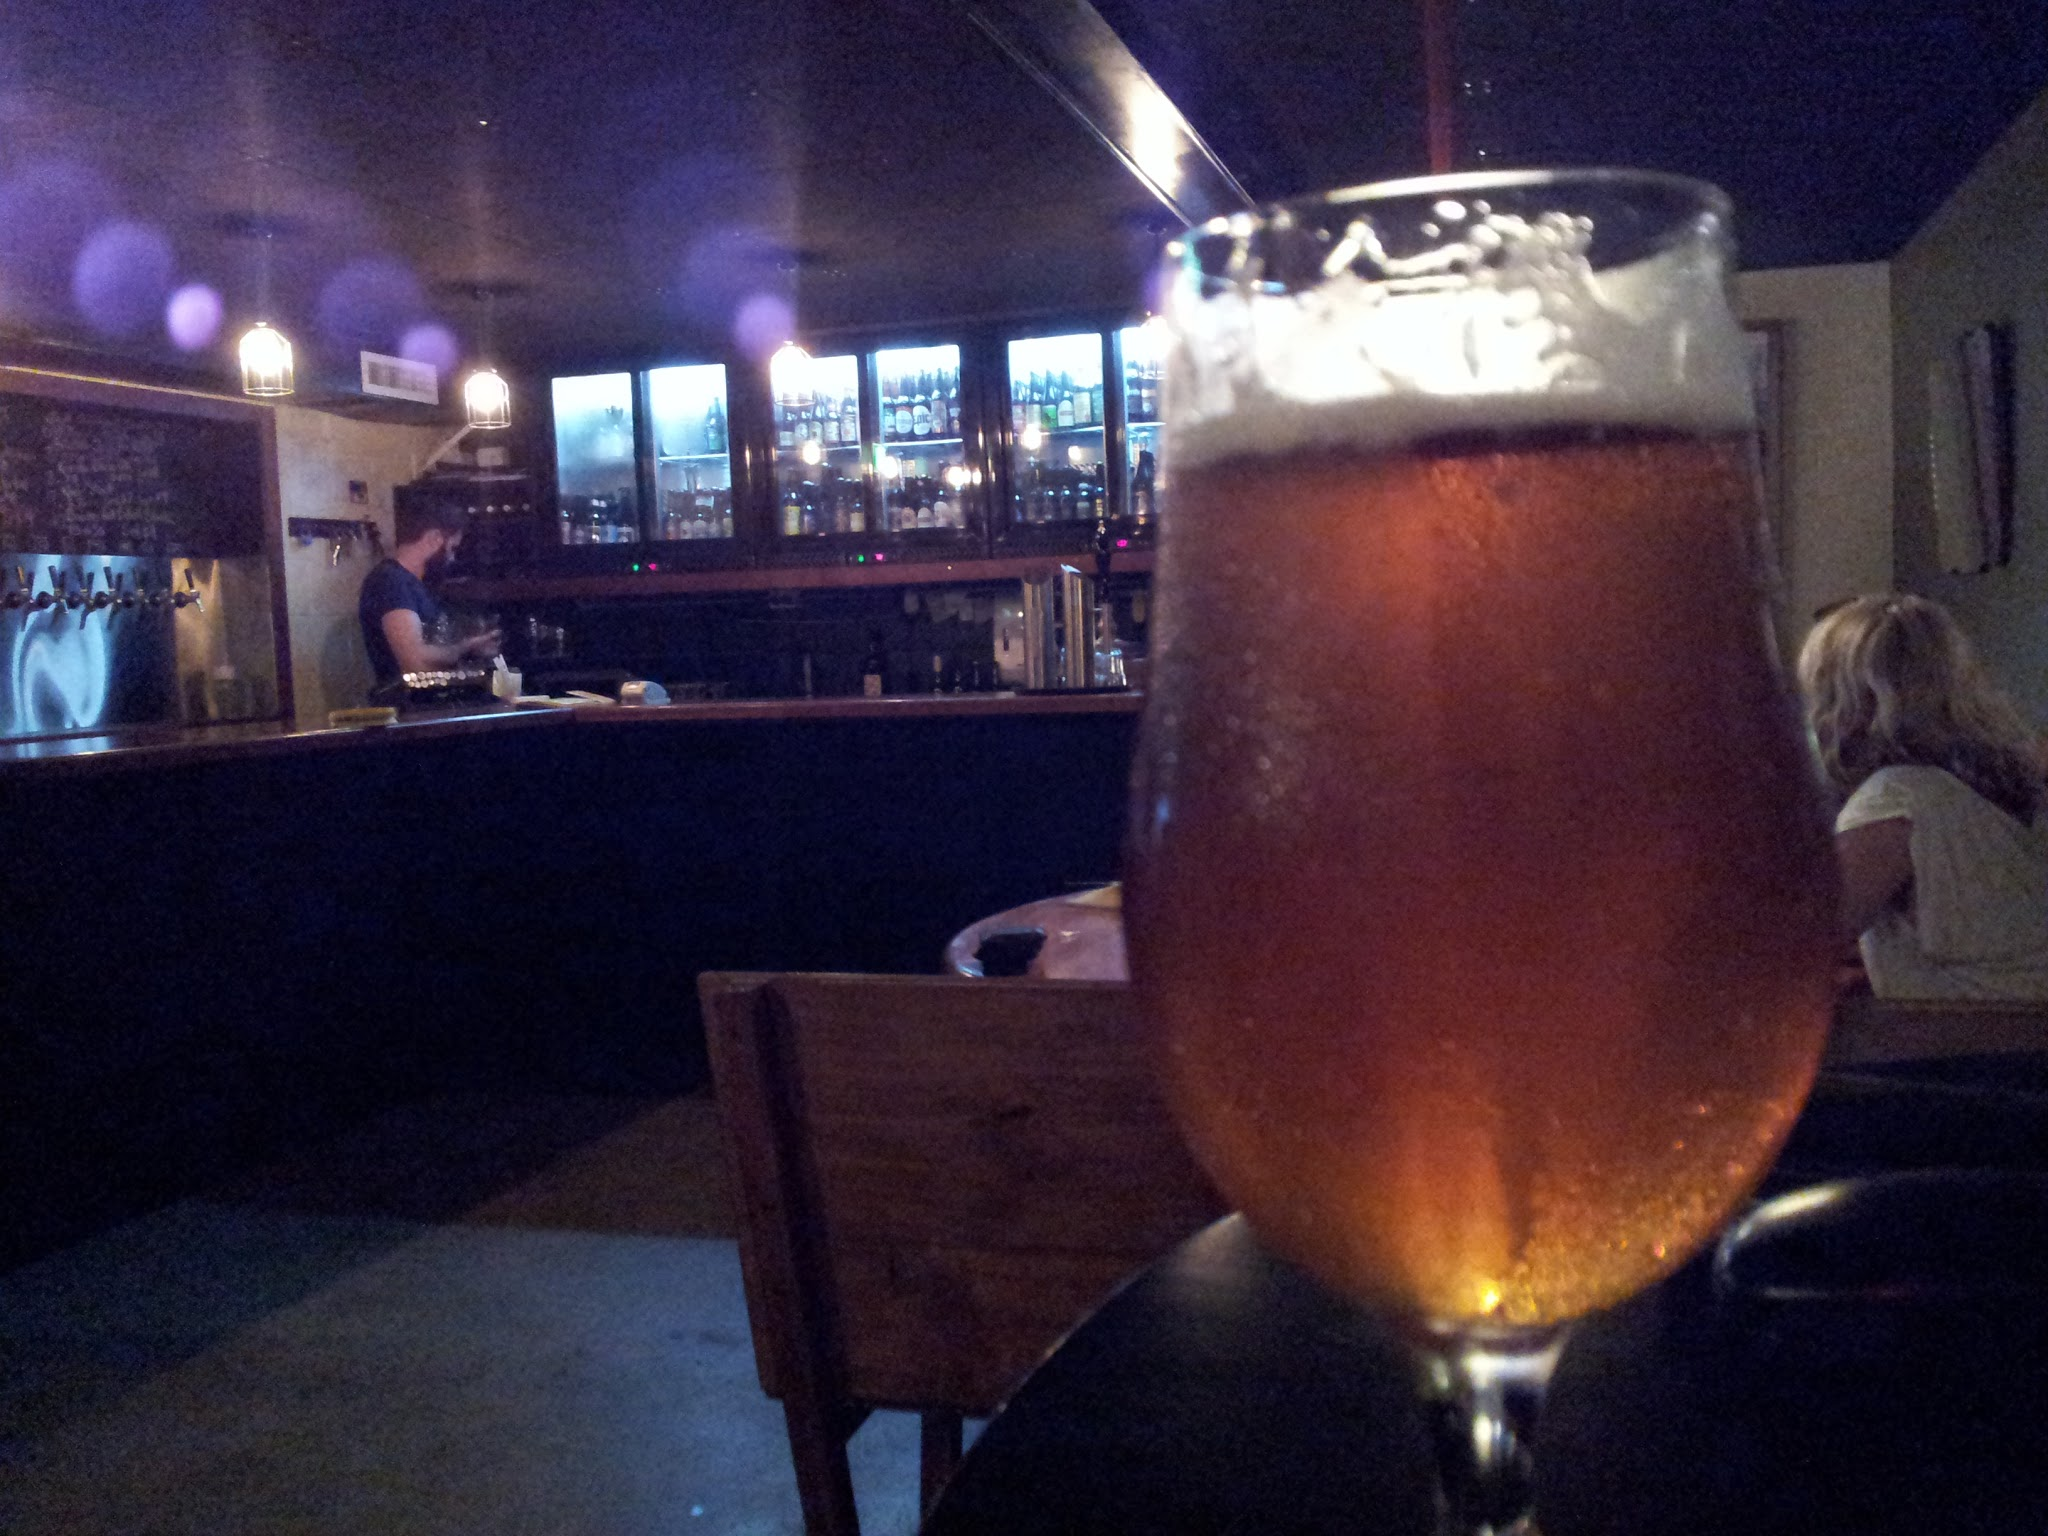 Off the tap at Tipplers Tap, Newstead